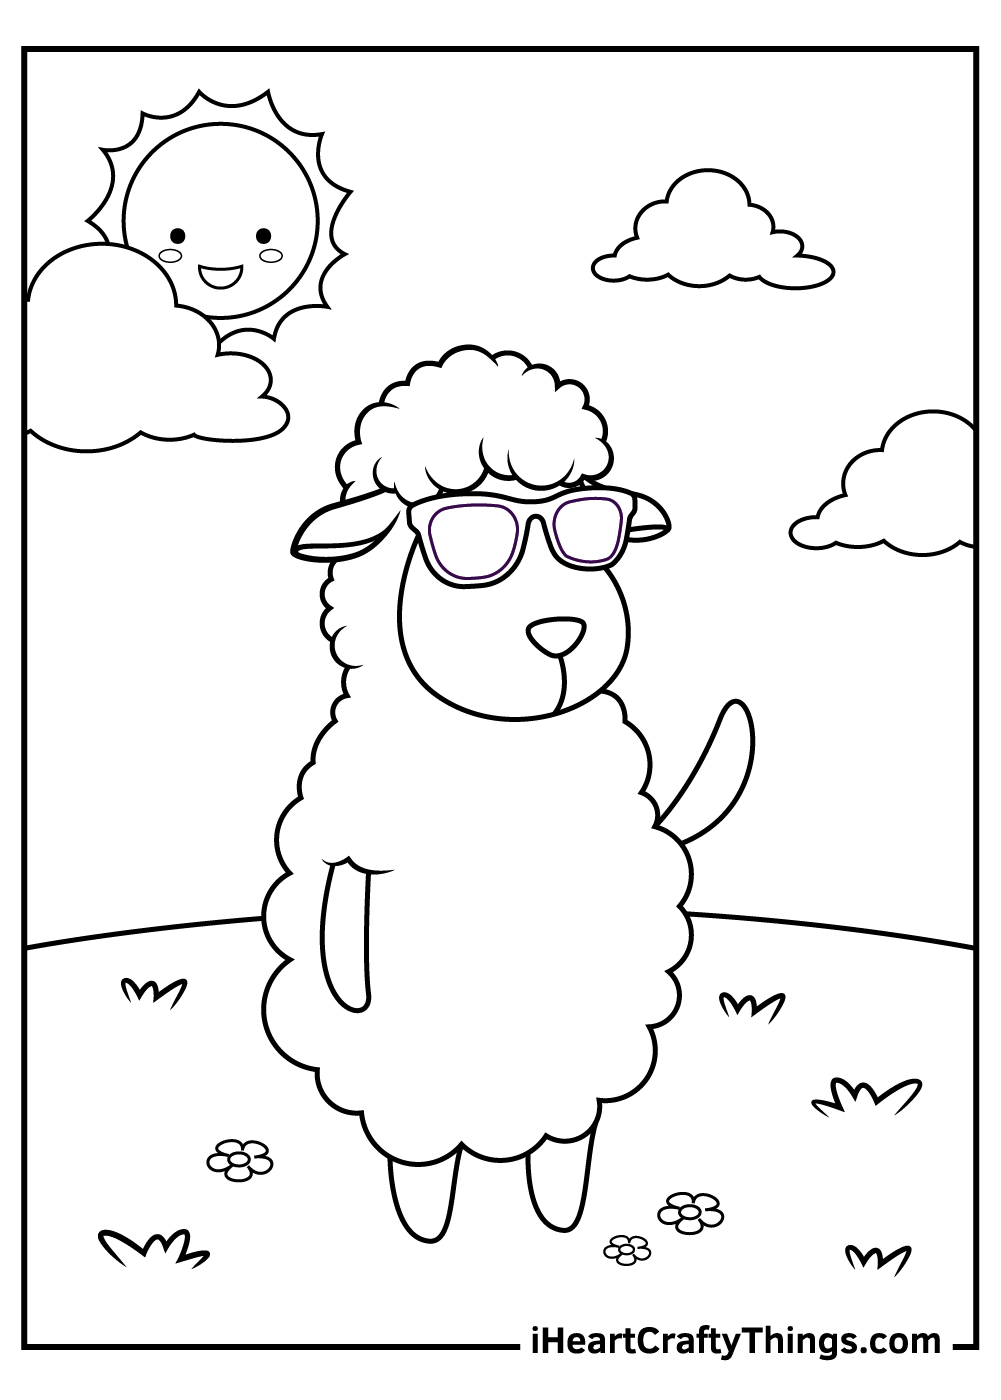 funny sheep coloring pages for kids